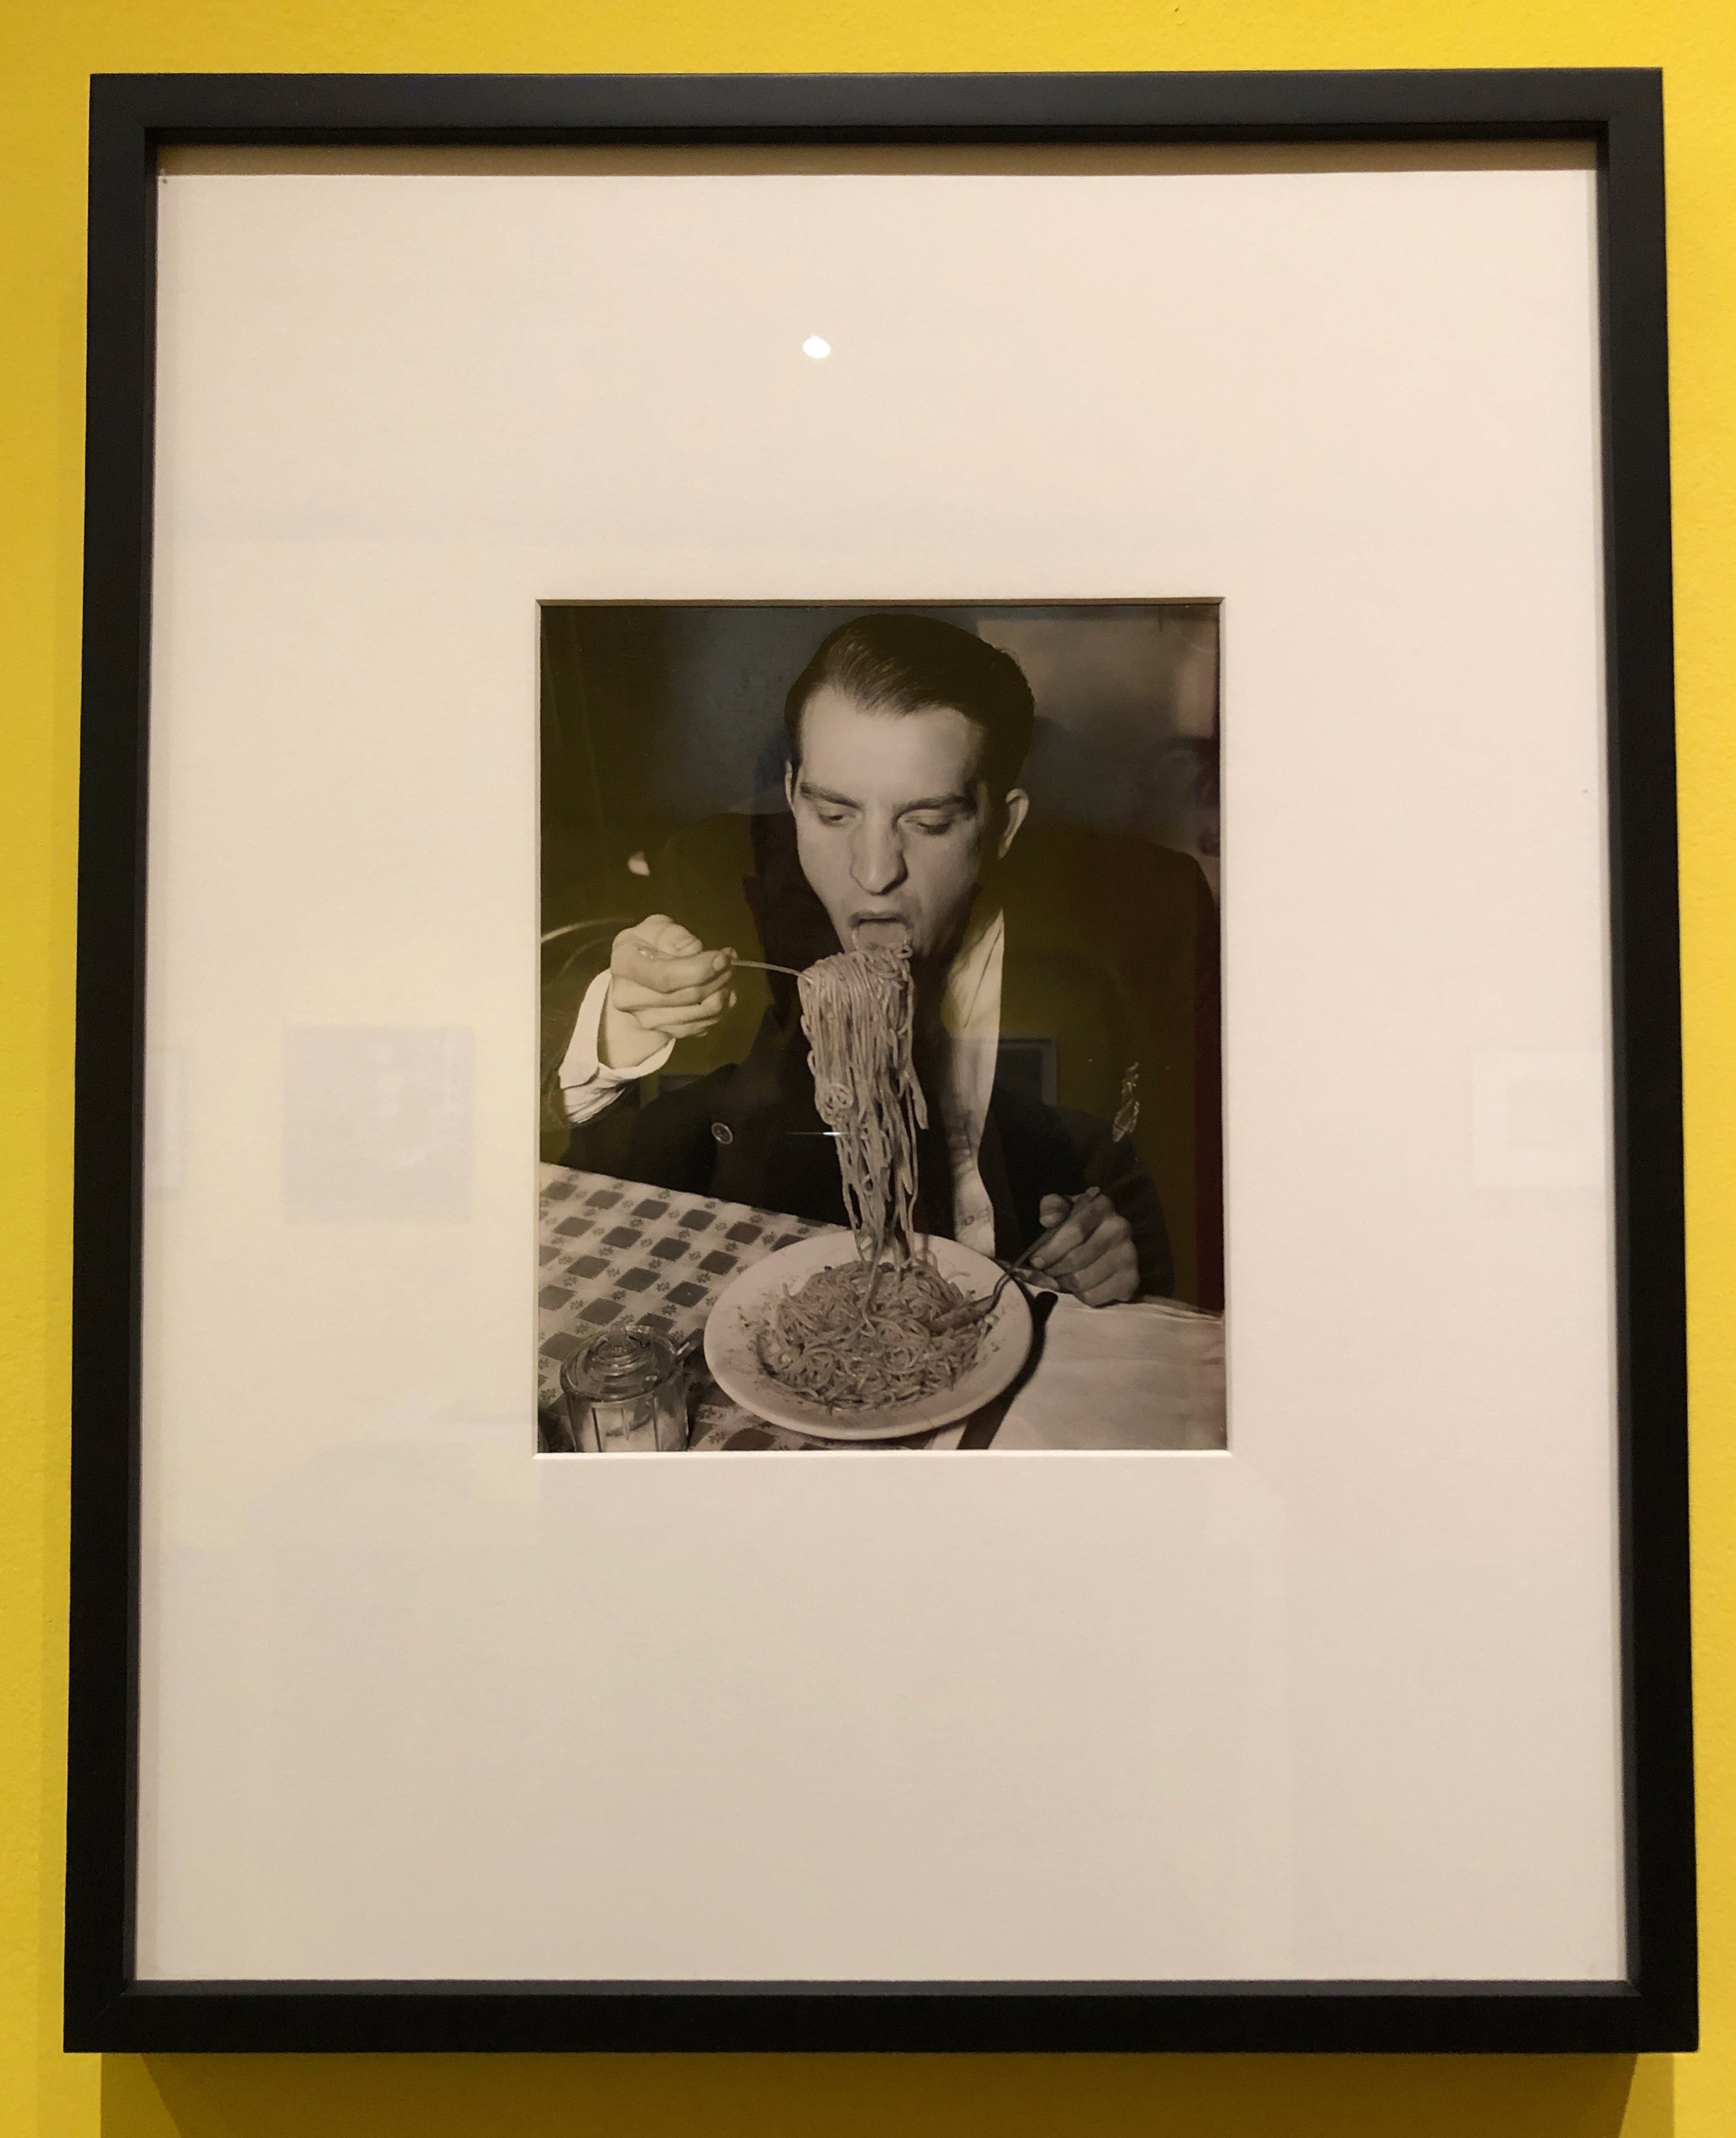 In a 1940 photograph by Weegee, Phillip J. Stazzone enjoys a large mouthful of spaghetti .